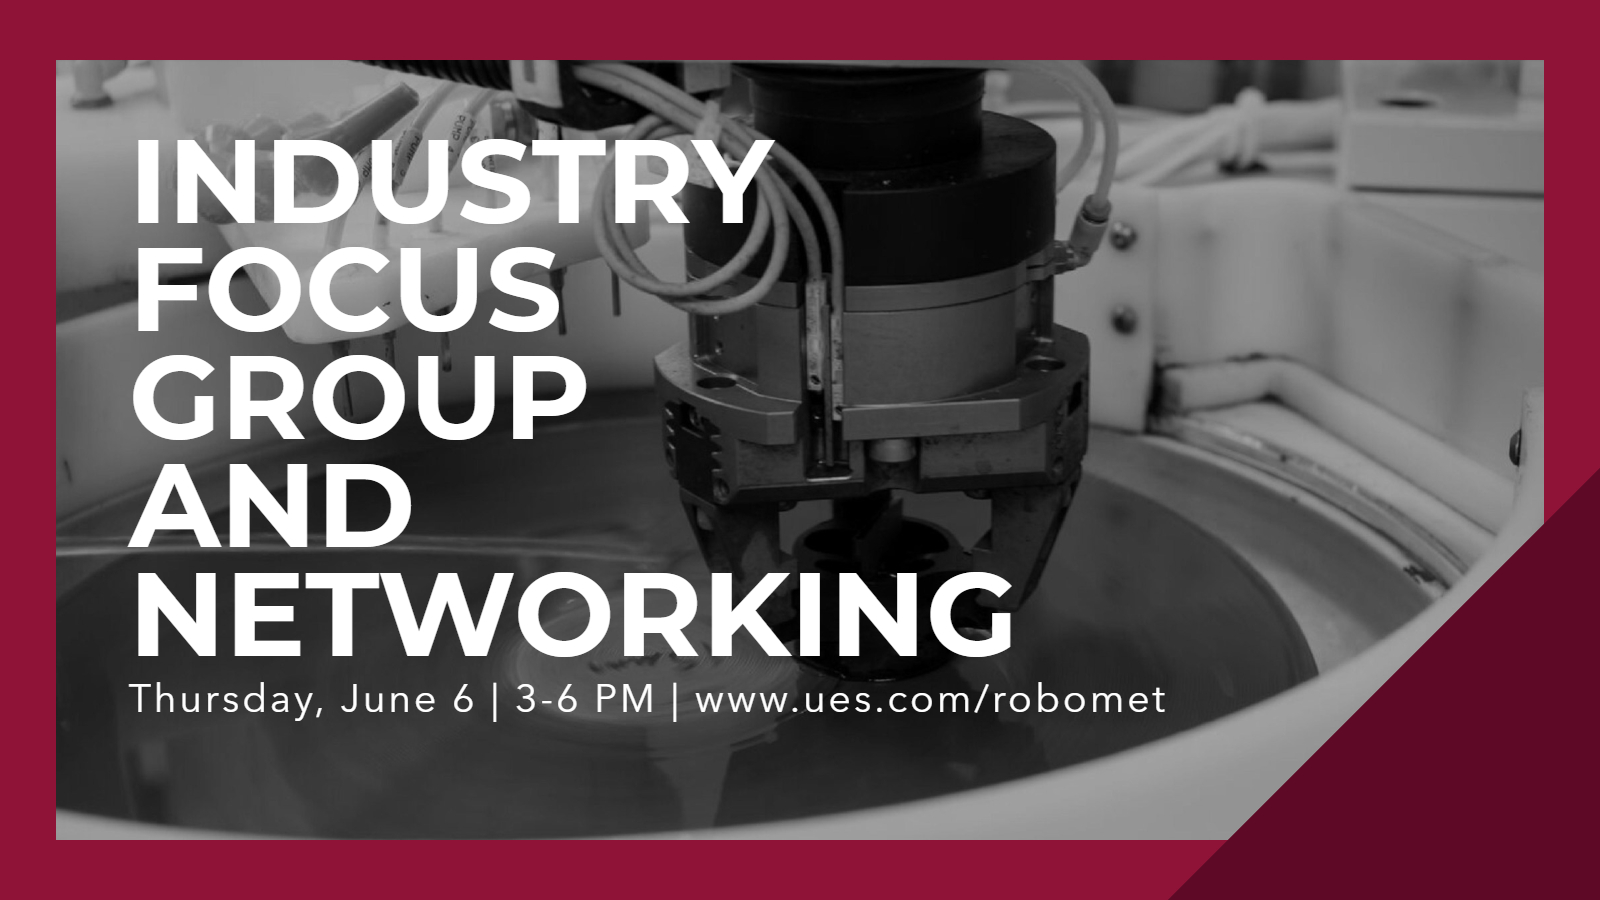 Industry Focus Group Event